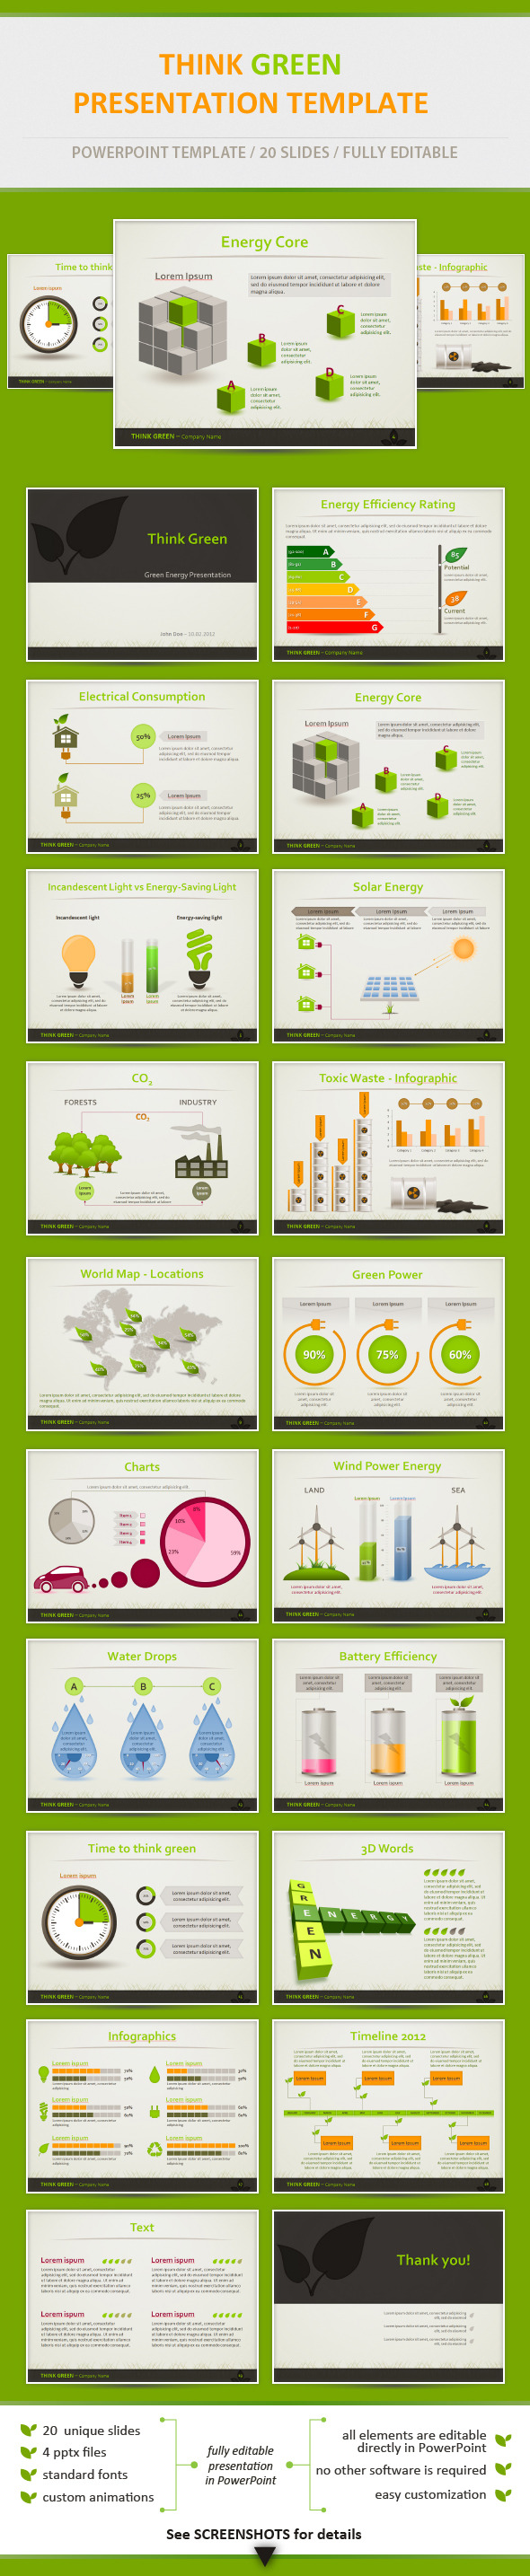 Think Green - Eco Friendly Presentation Template - PowerPoint Templates Presentation Templates